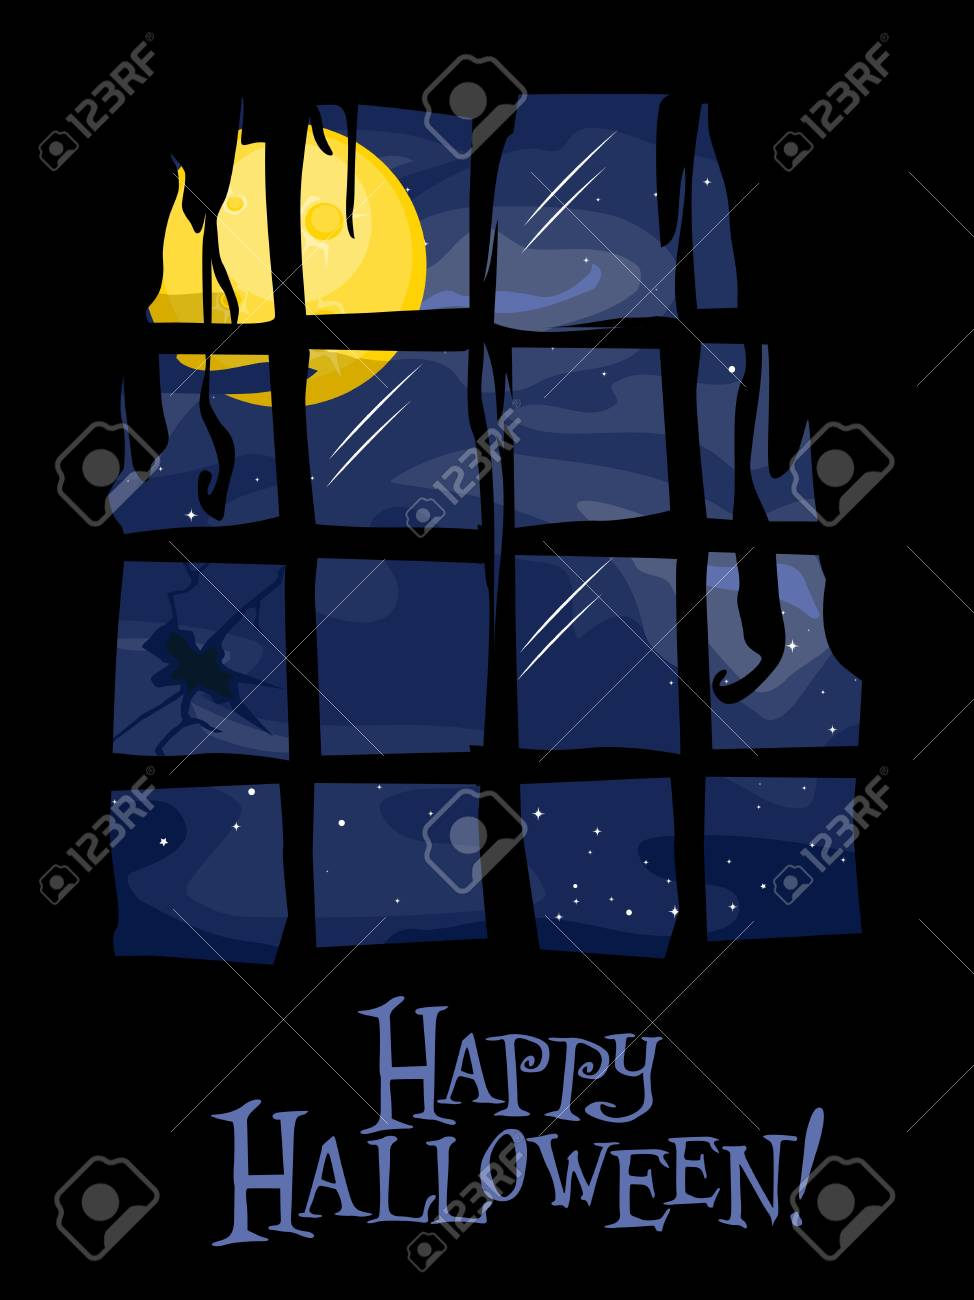 Silhouette of a Damaged Window with a Bright Full Moon in the Background Stock Photo - 8268566